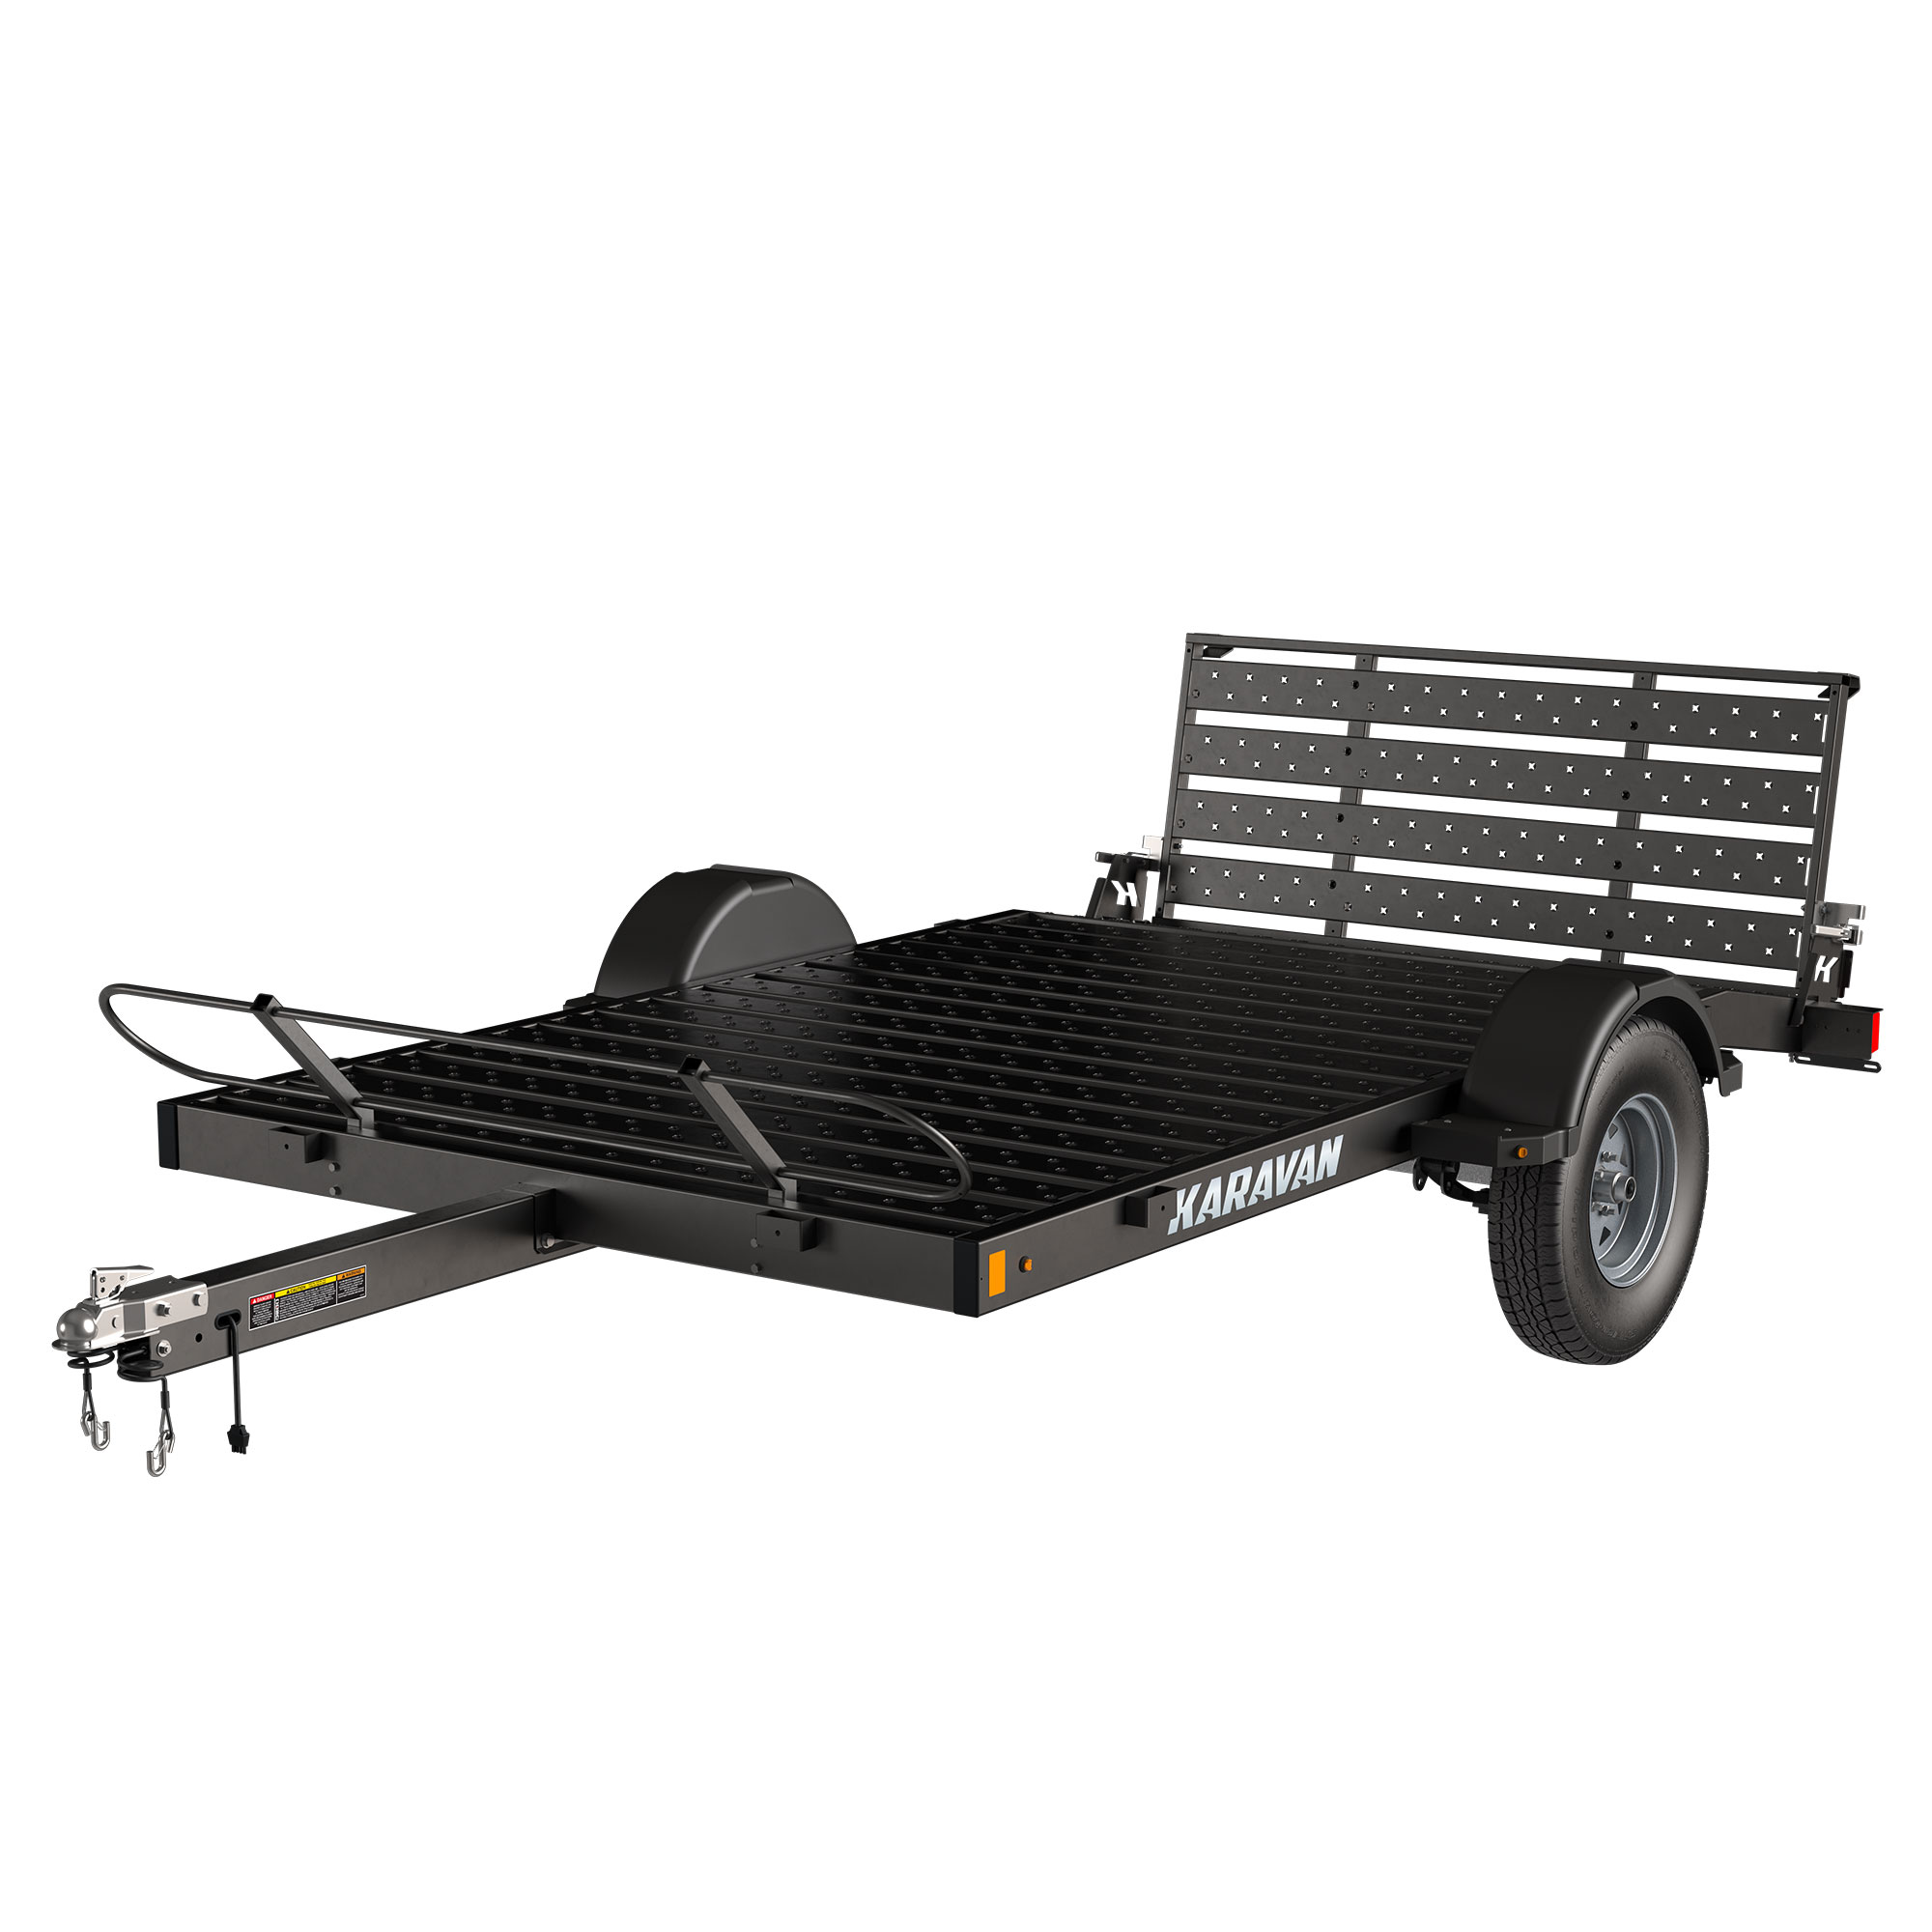 Karavan Trailer's 6 x 10 Ft. Steel Floor Utility Trailer, model number KUS-2990-72-10-BT